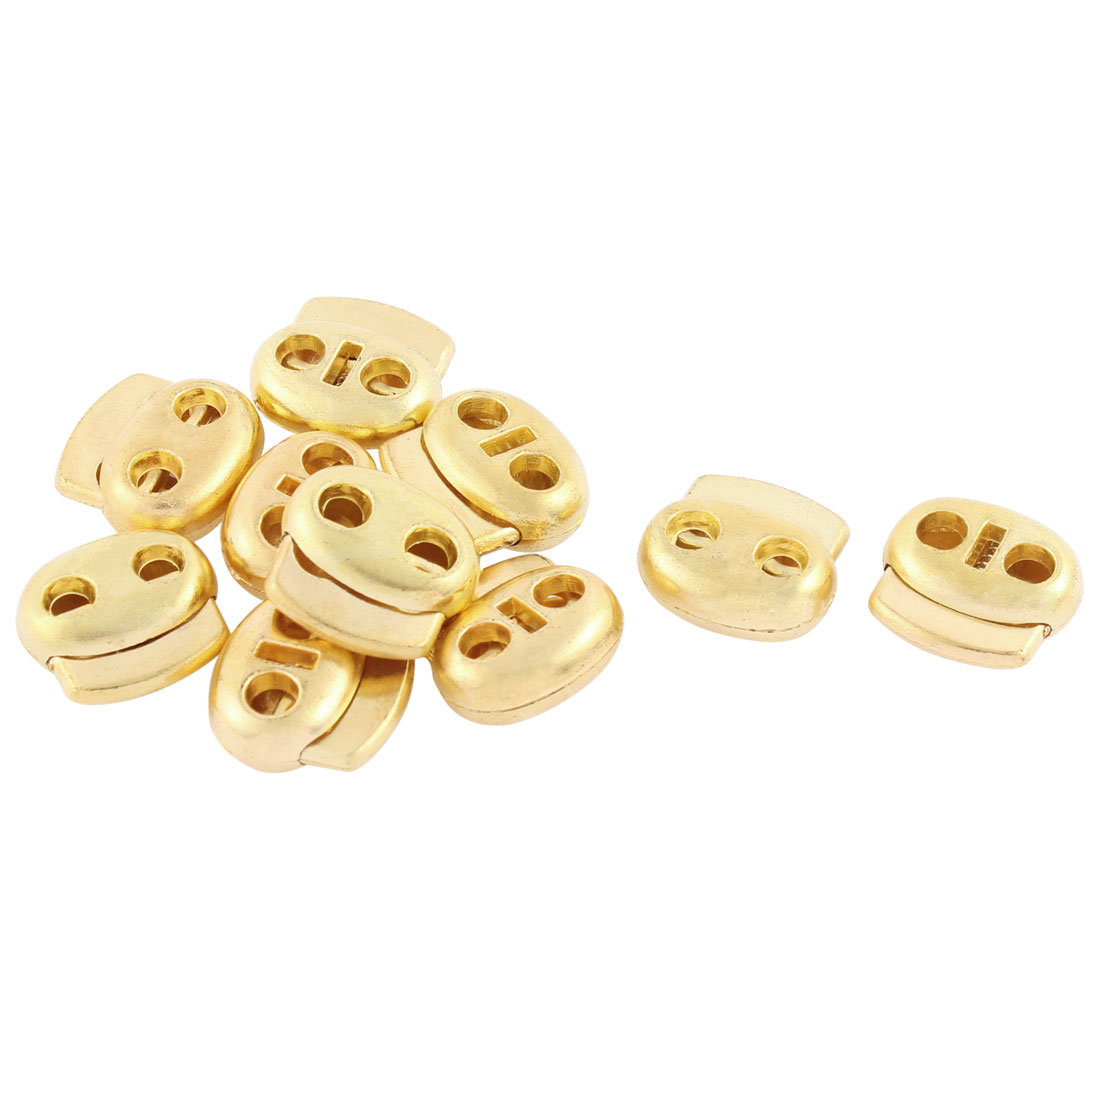 10 Pcs Double Holes Cord Lock Stopper Toggles Spring Adjuster Fastener Gold Tone